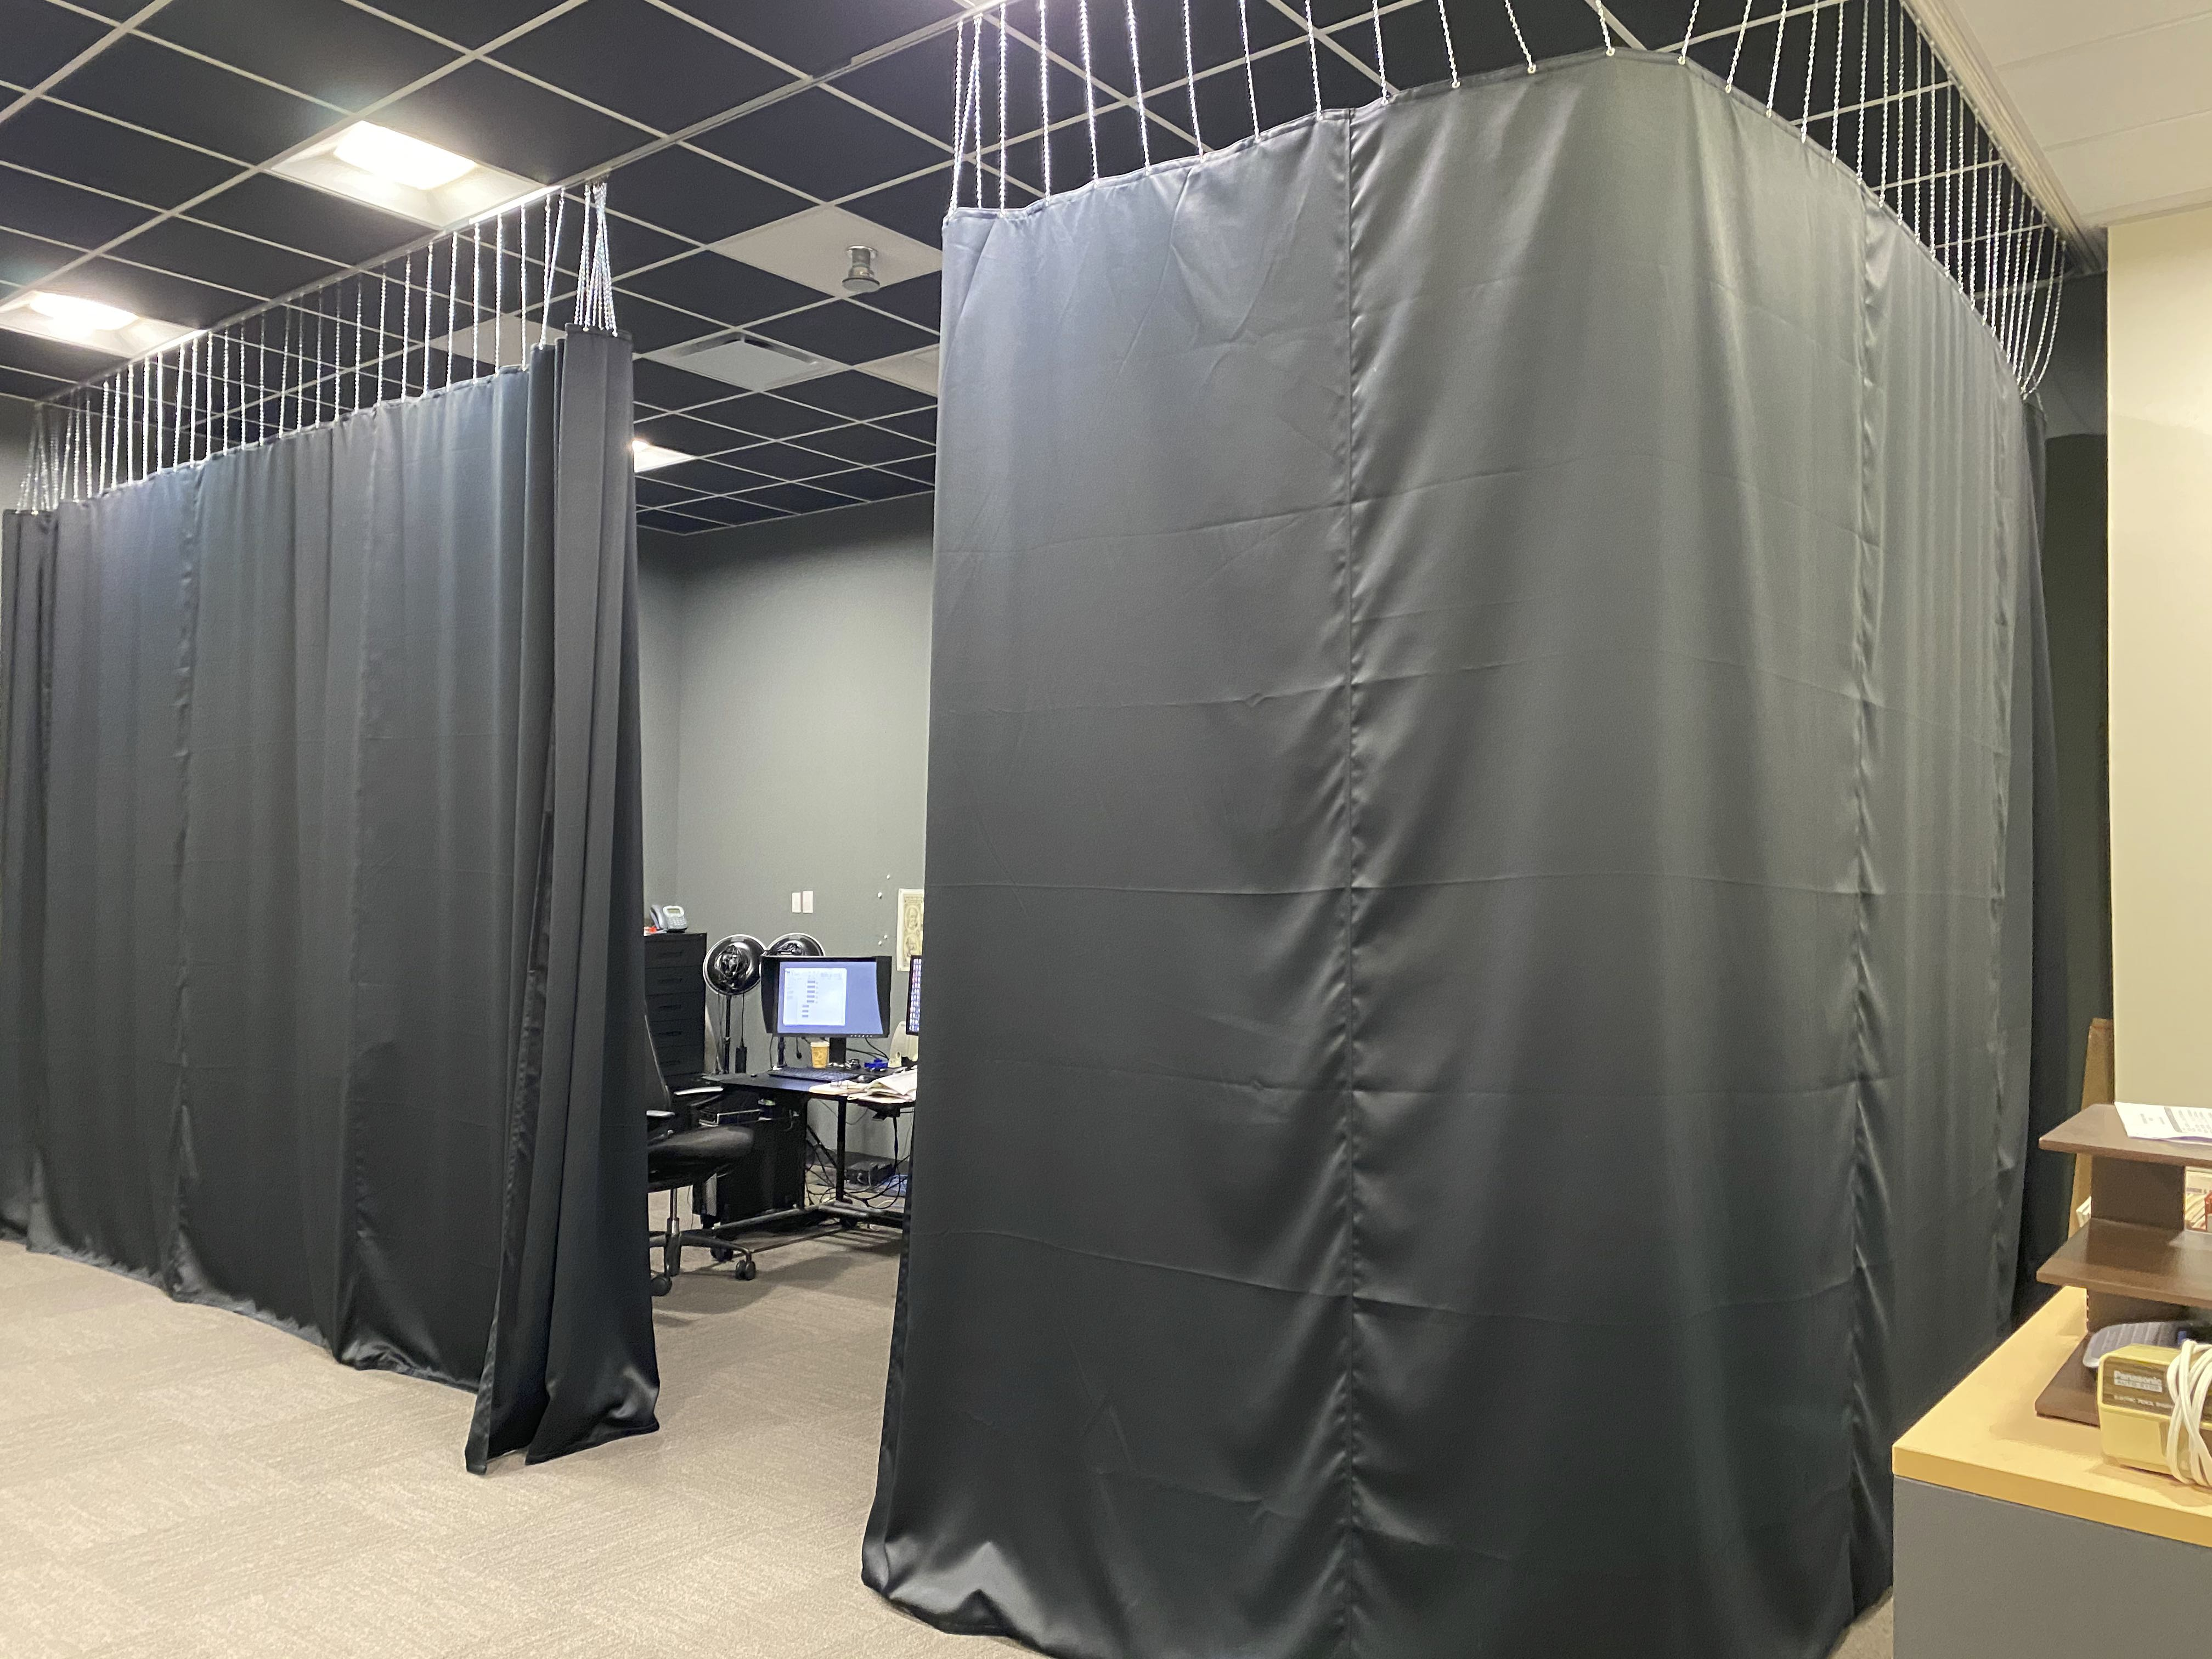 Blackout curtains installed in The Ringling Archives